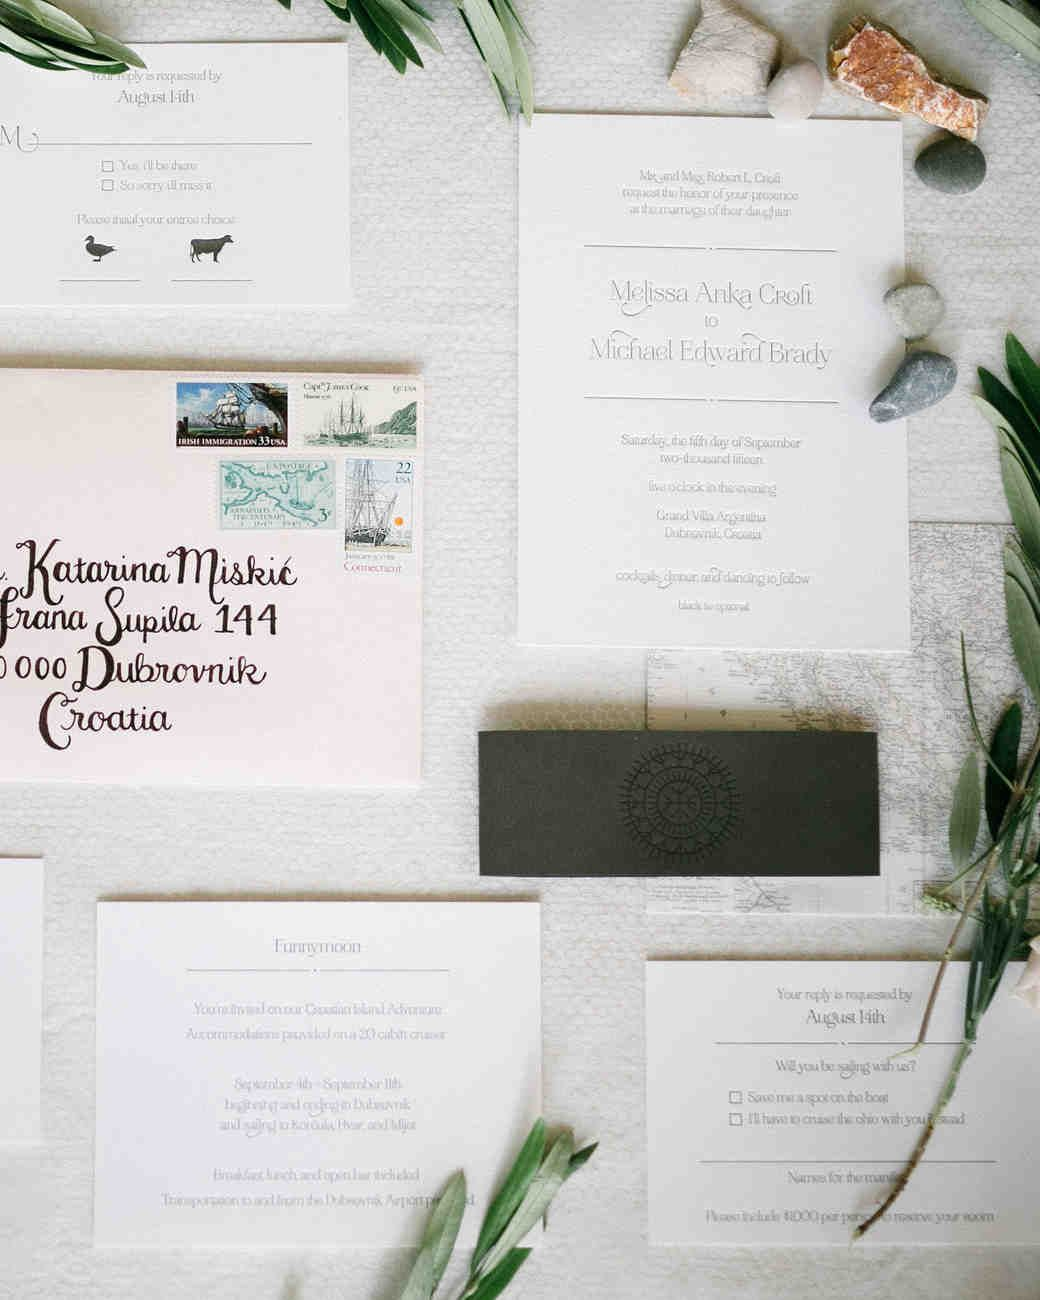 A Modern Seaside Croatian Wedding | Martha stewart weddings ...